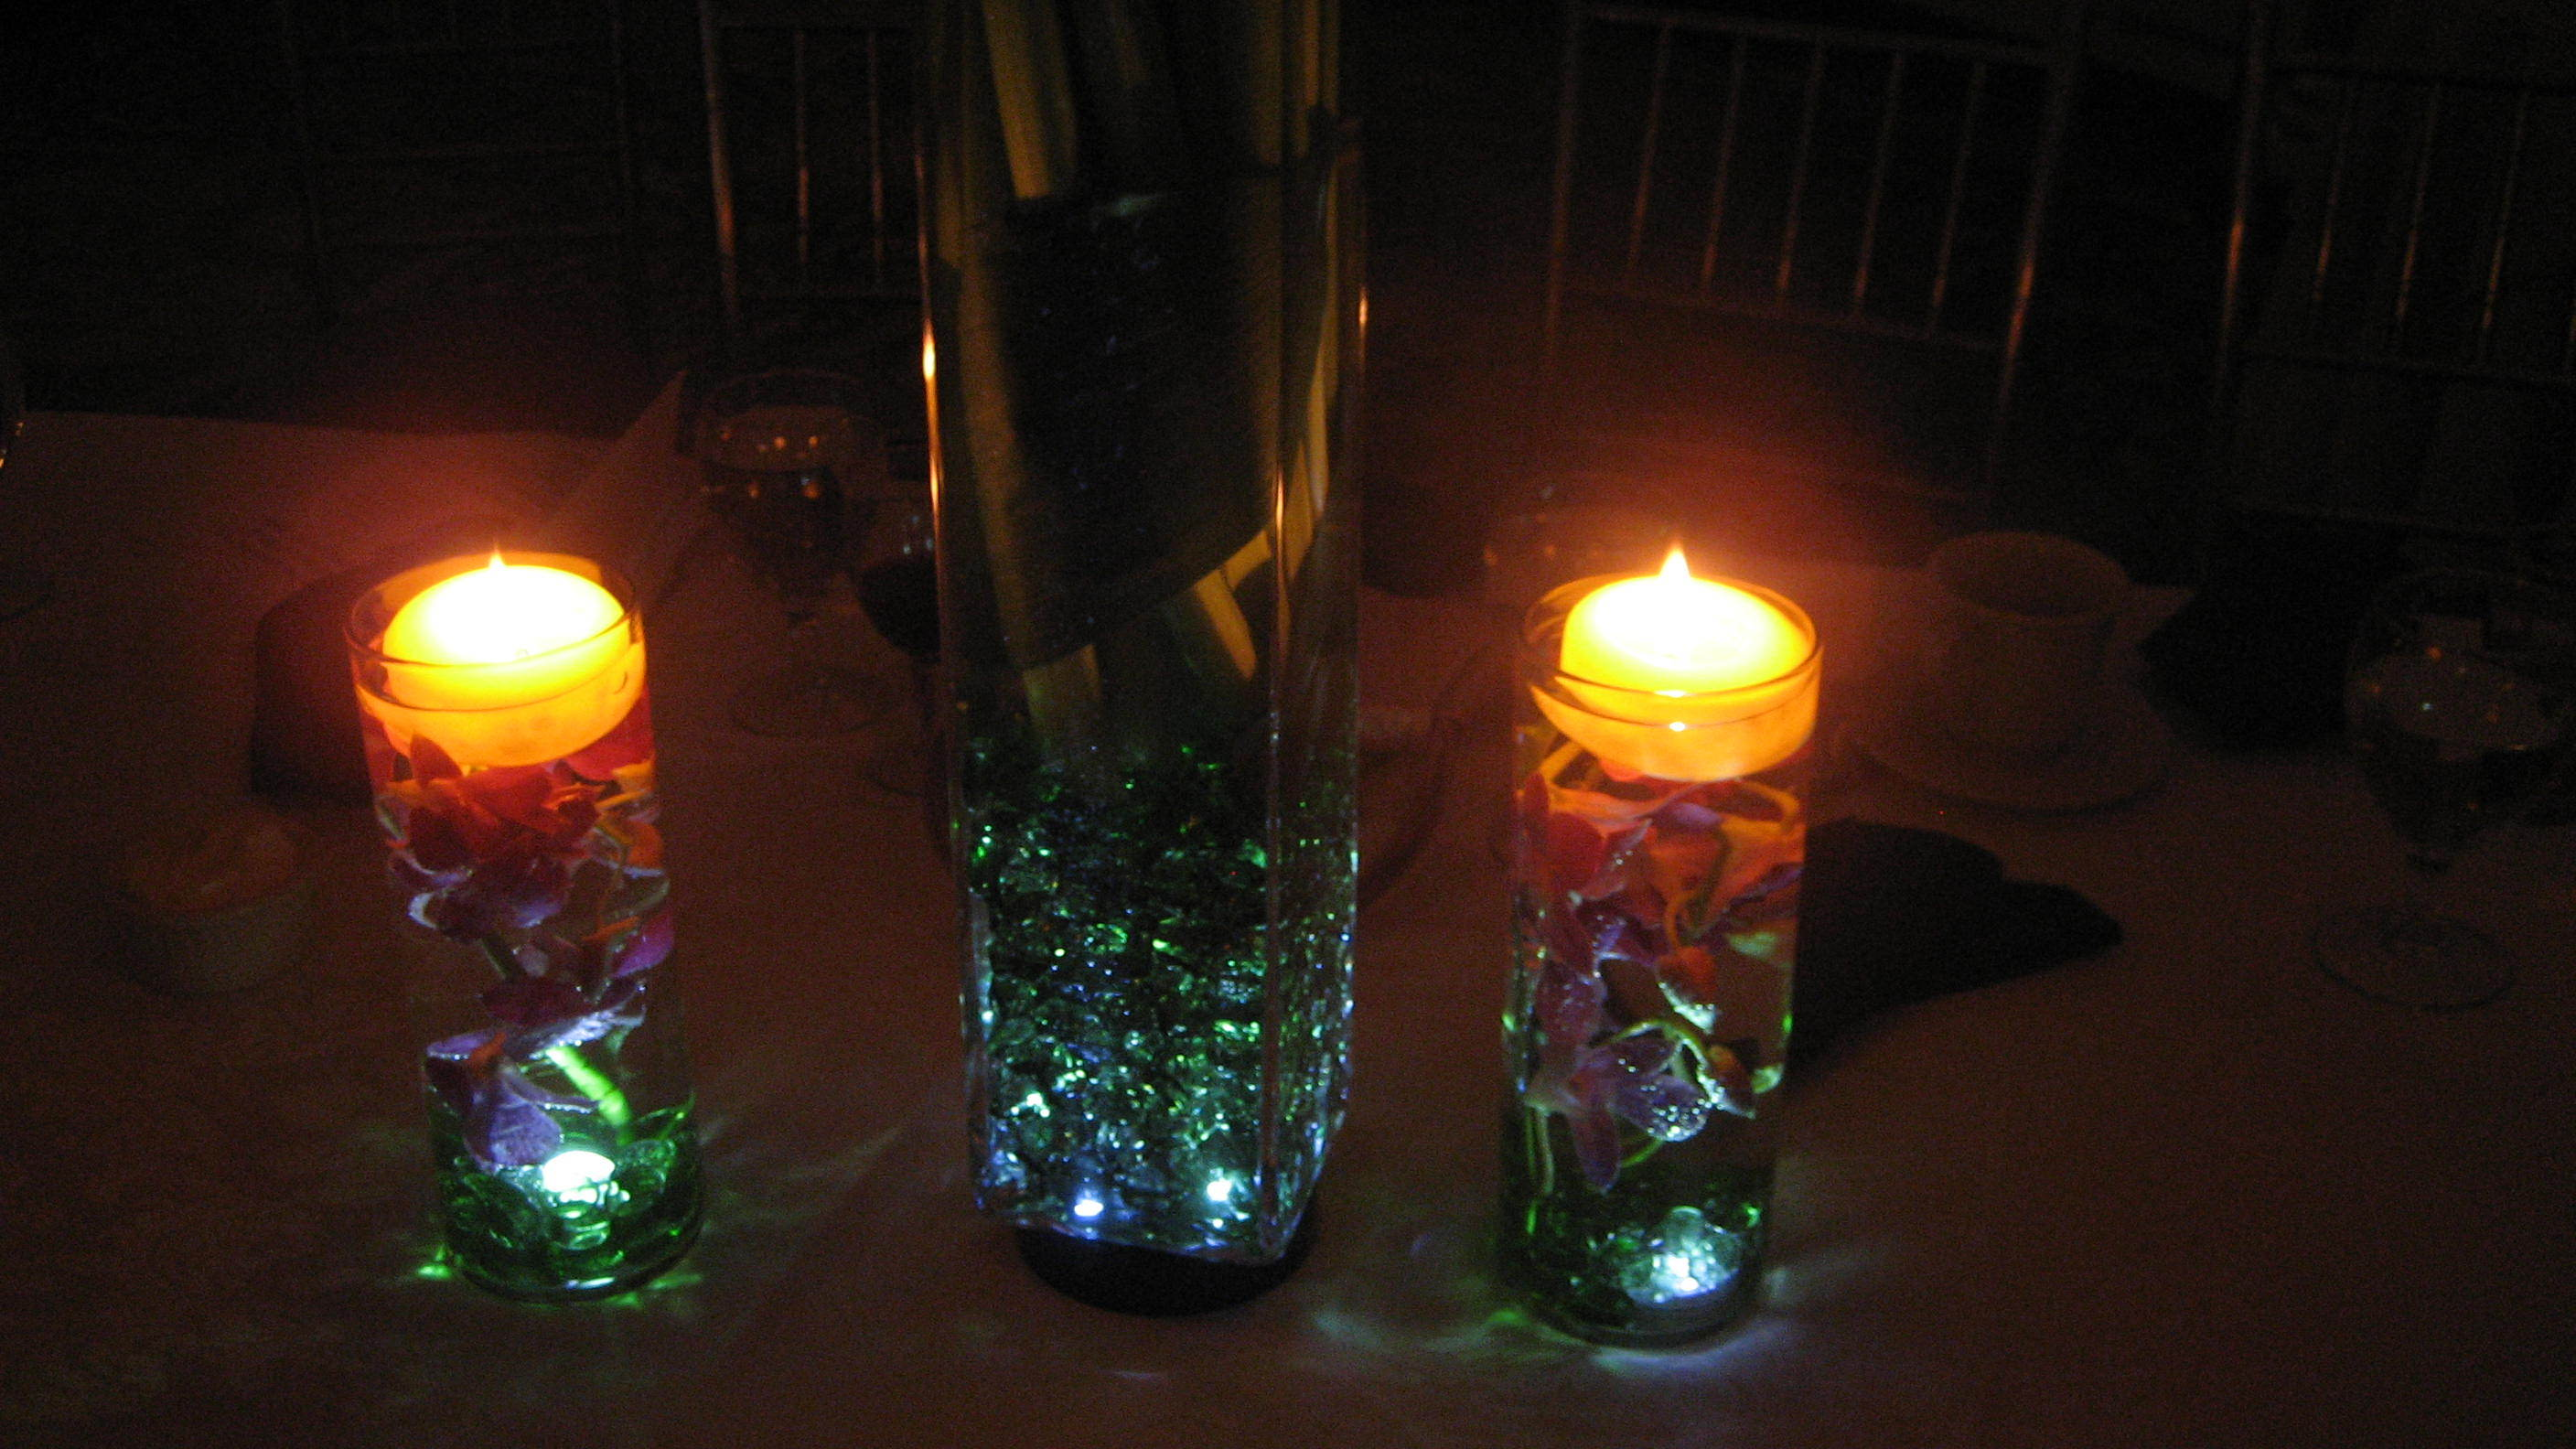 Accents, Centerpiece, Lit, Erganic design